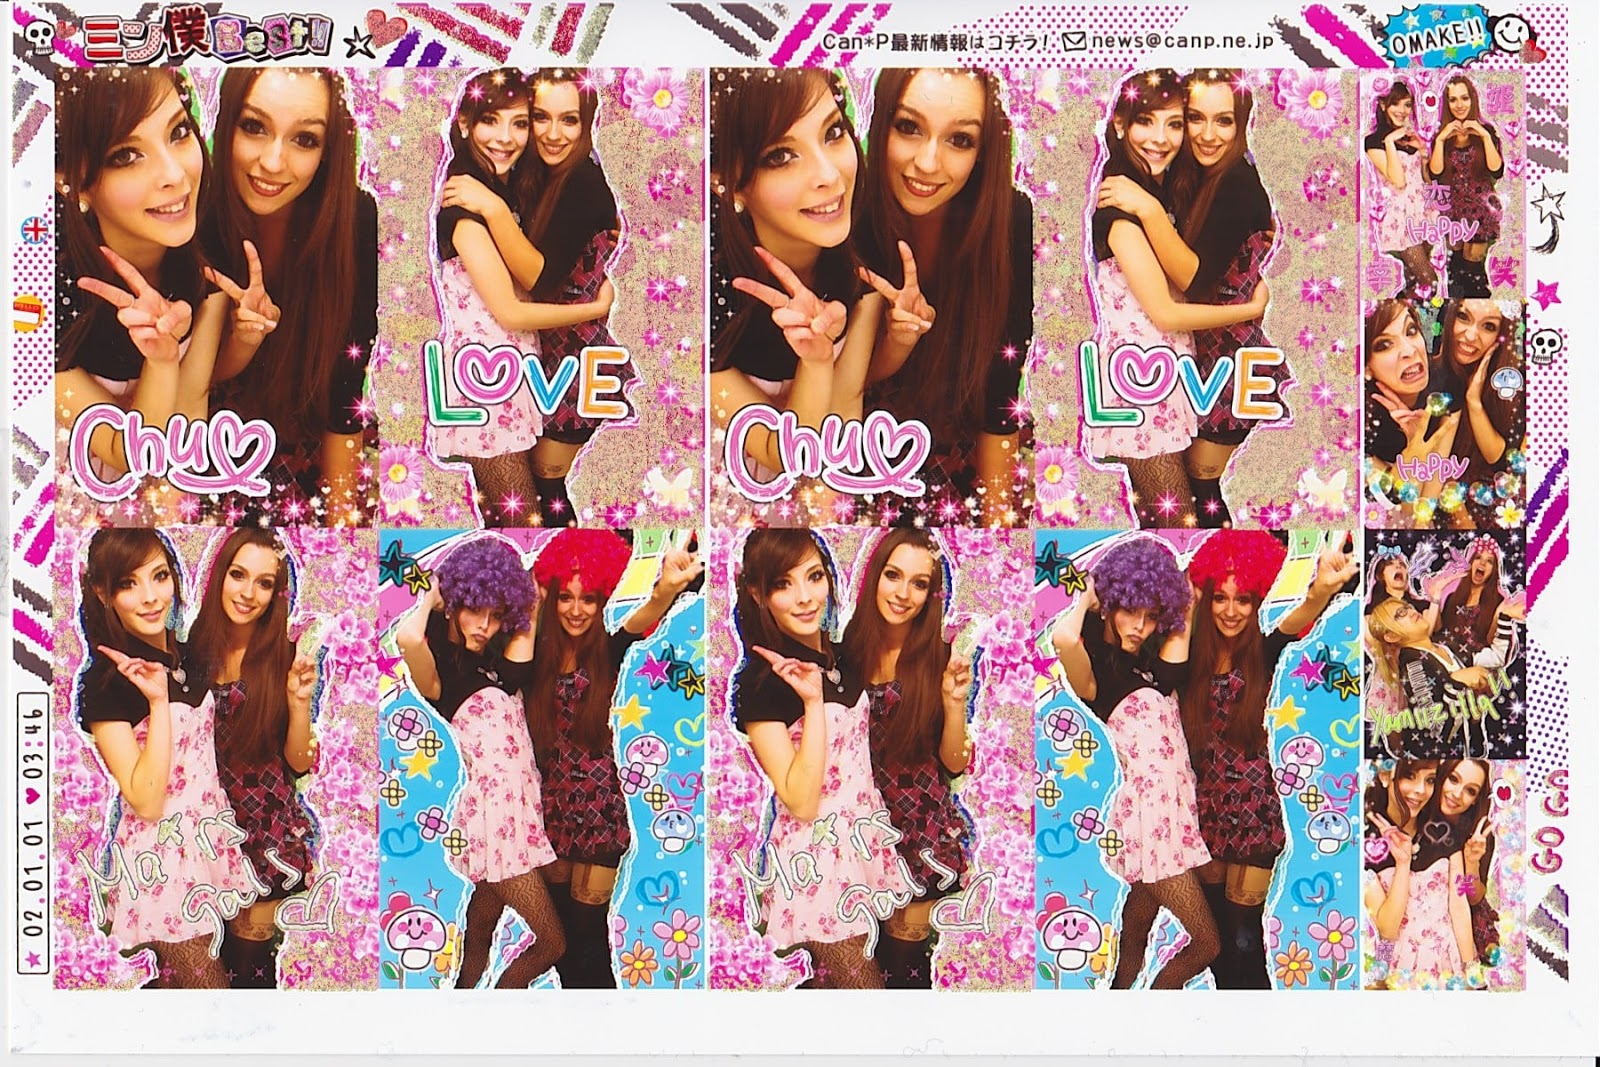 teeny tiny trip to london, london photo booth, purikura